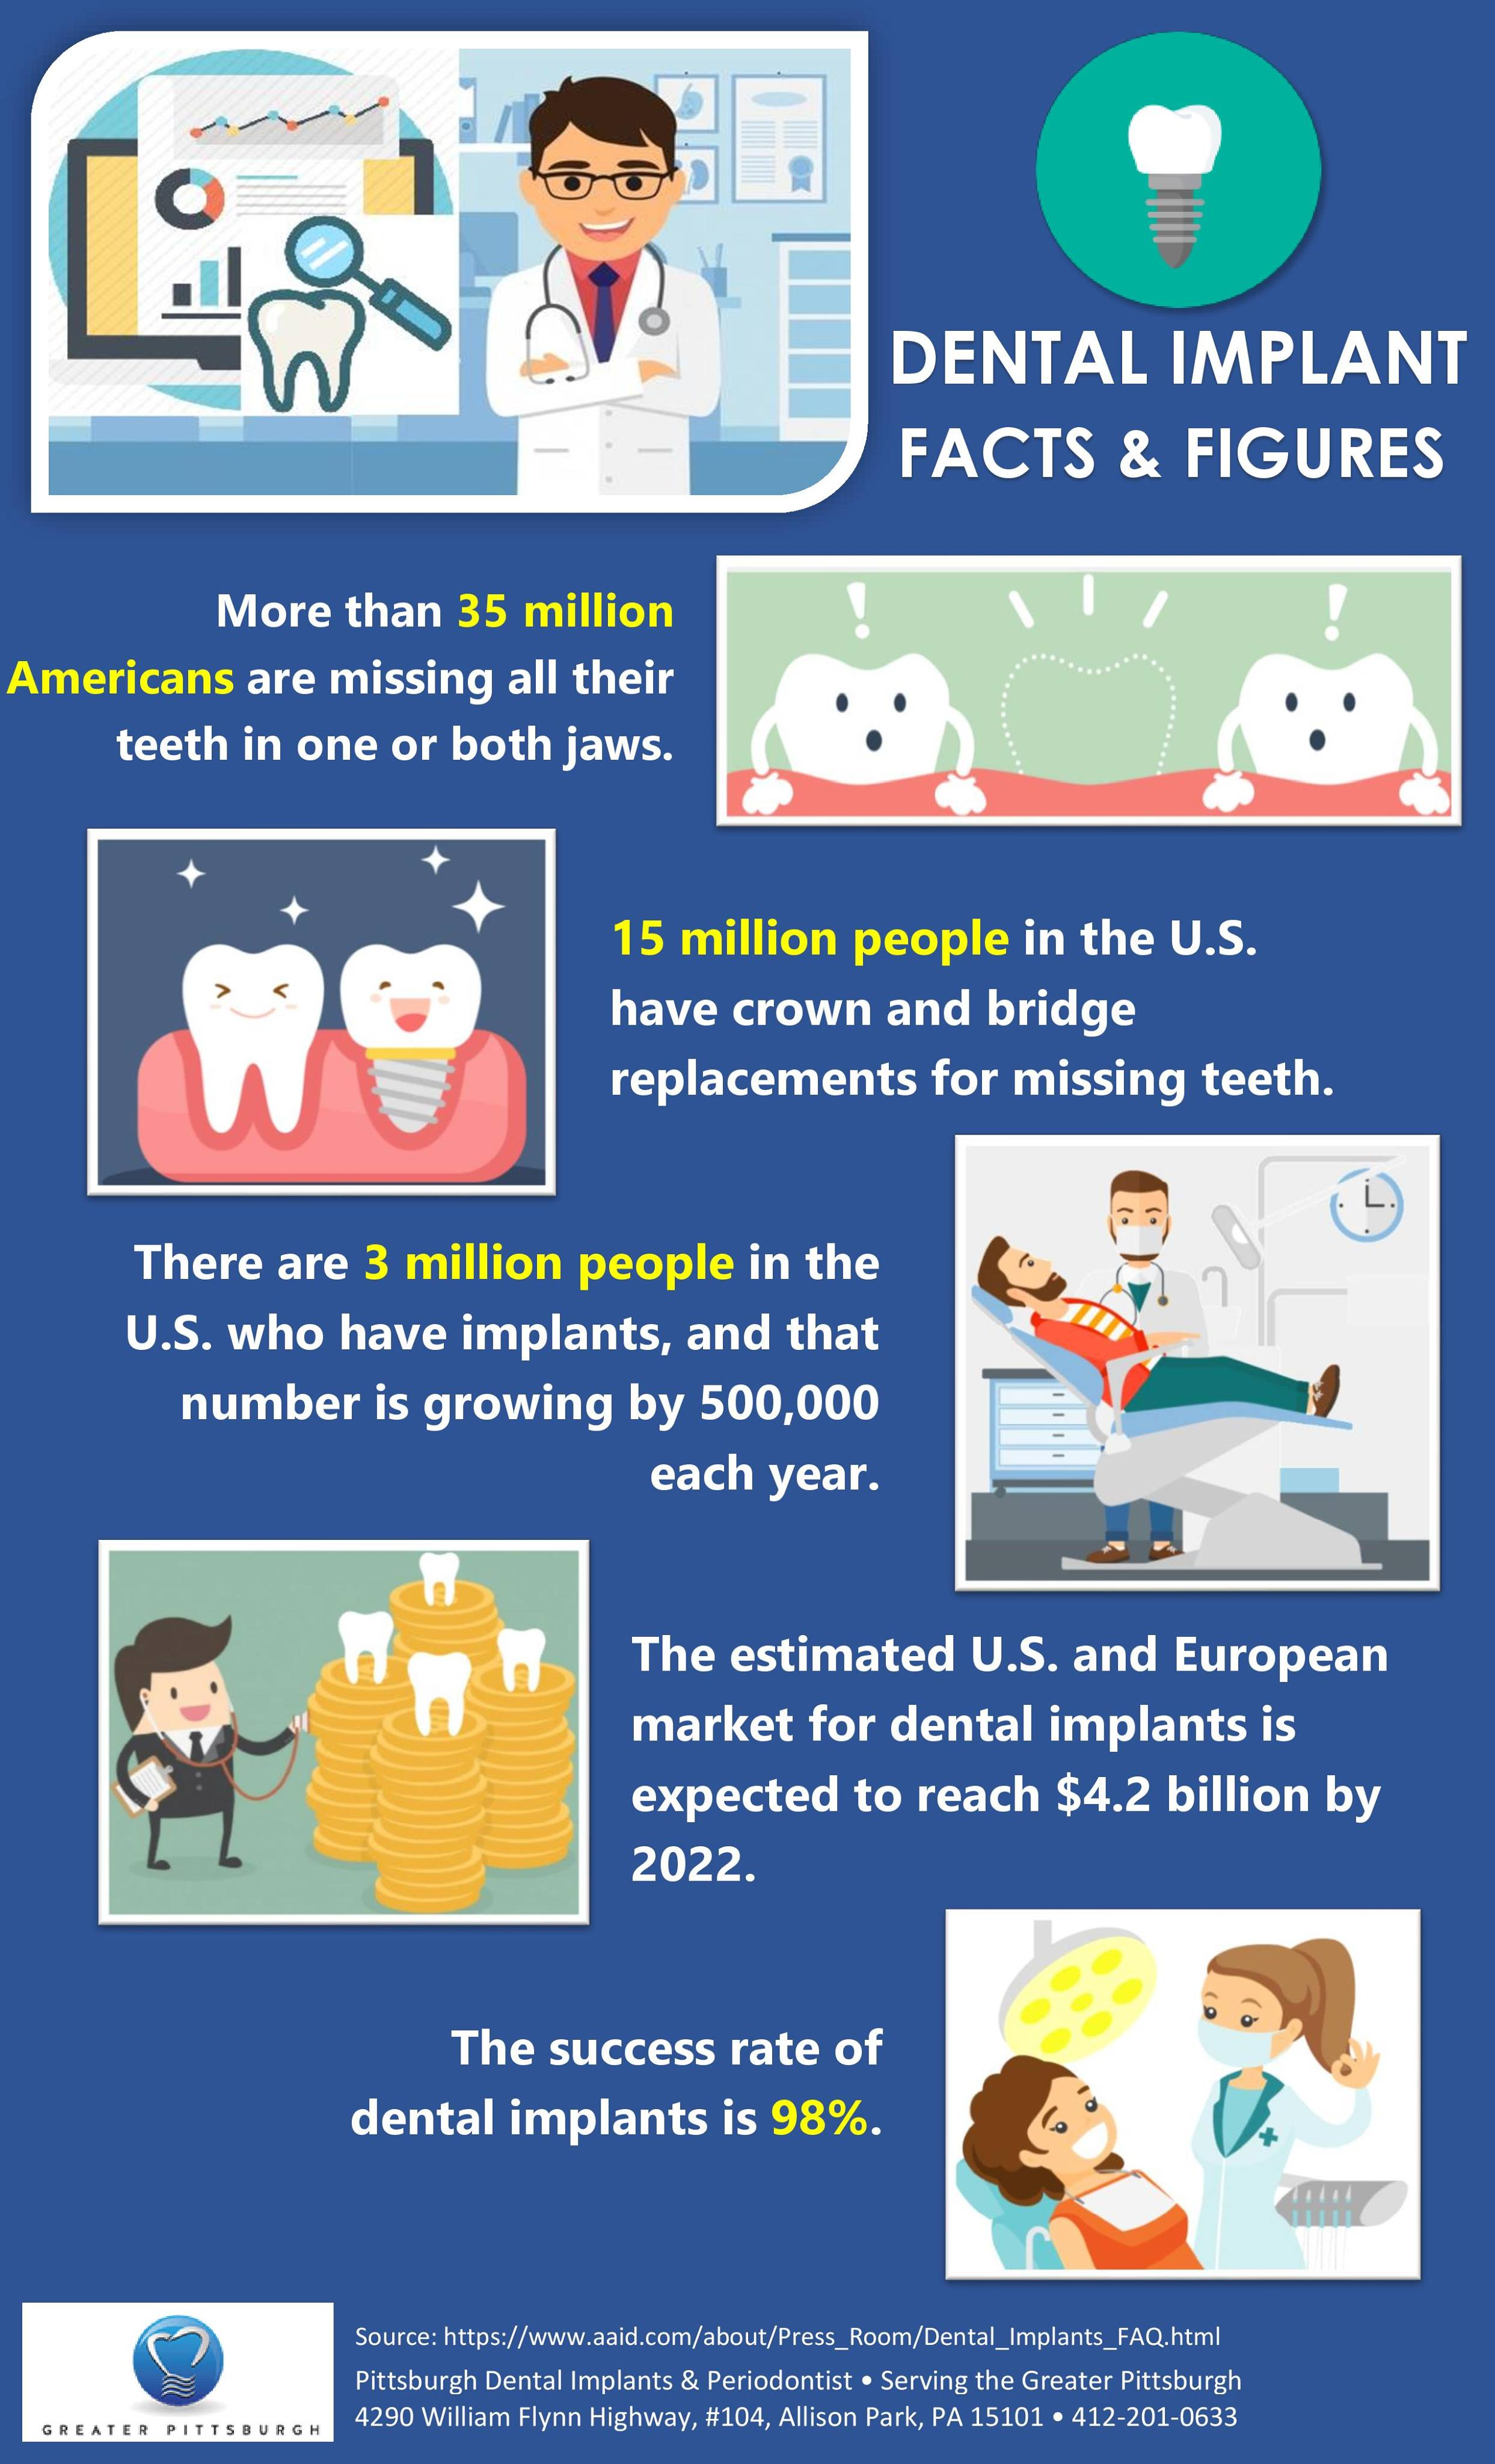 Dental Implants and Periodontics Pittsburgh - Facts and Figures